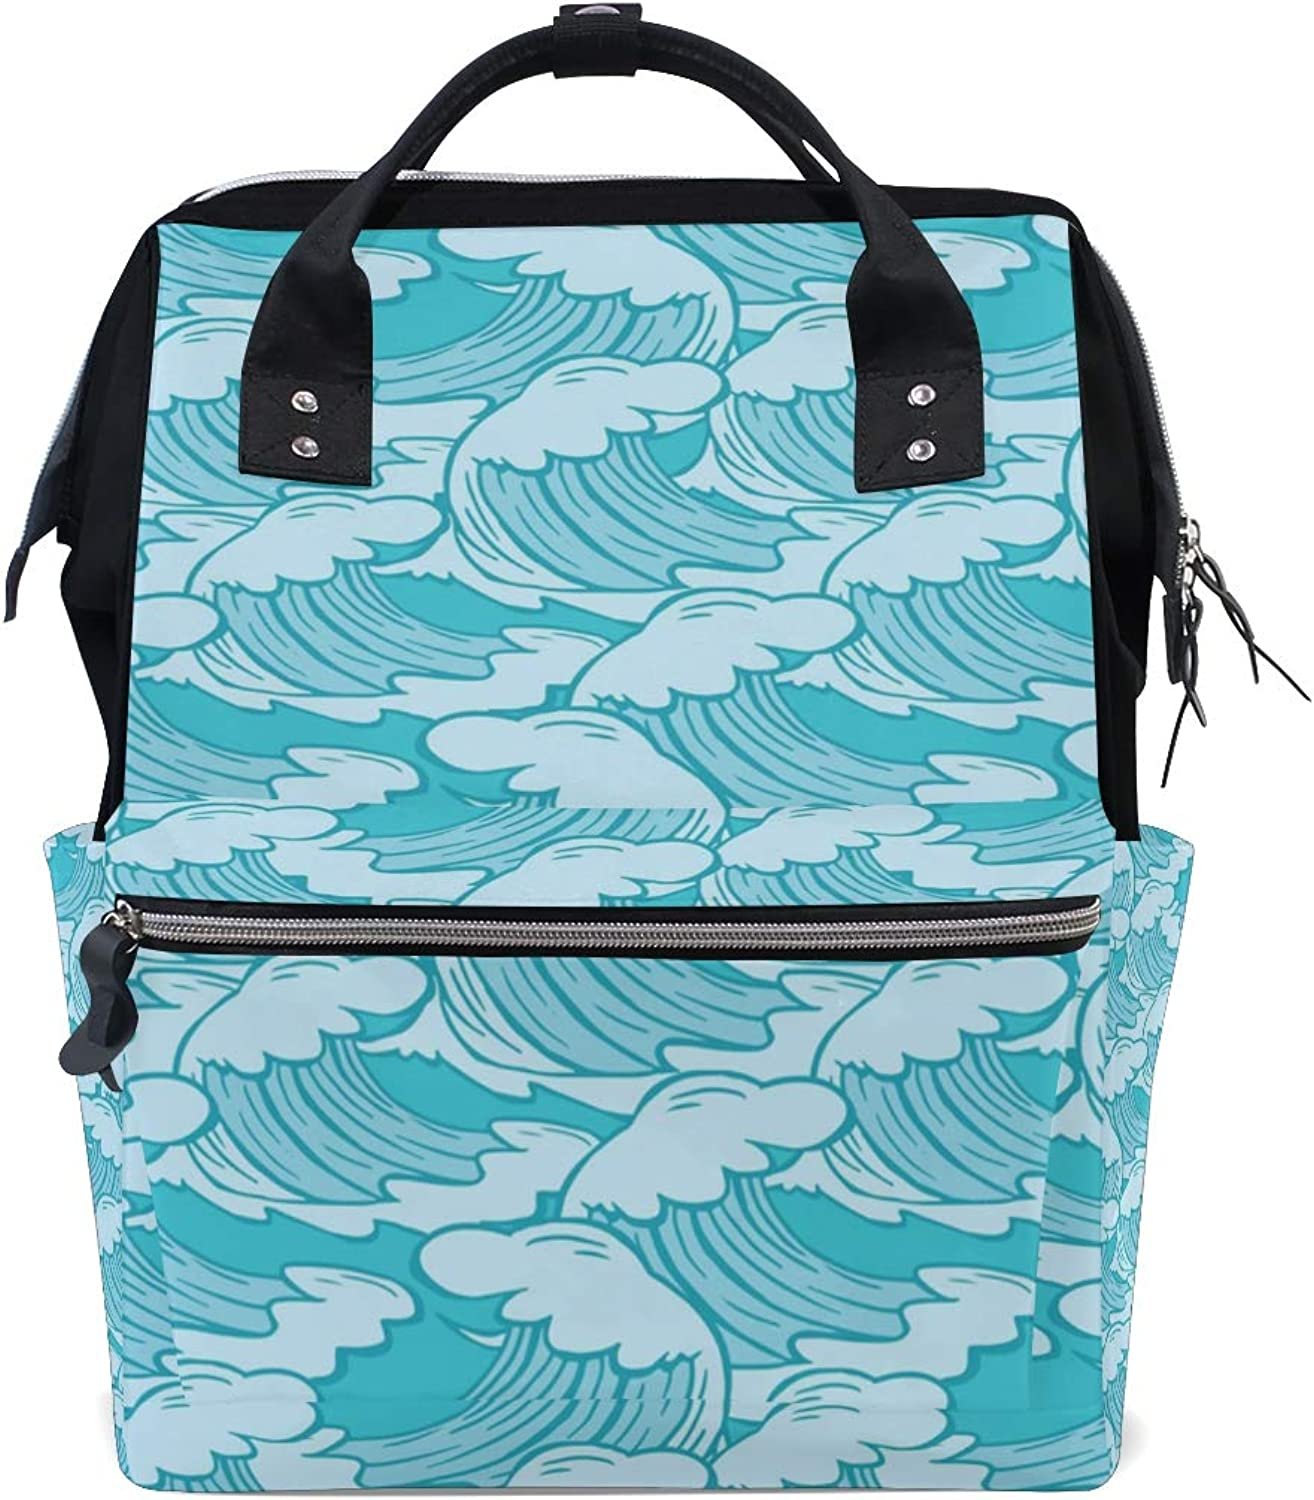 MONTOJ Hand Painted Sea Wave Pattern Canvas Travel Bag Campus Backpack